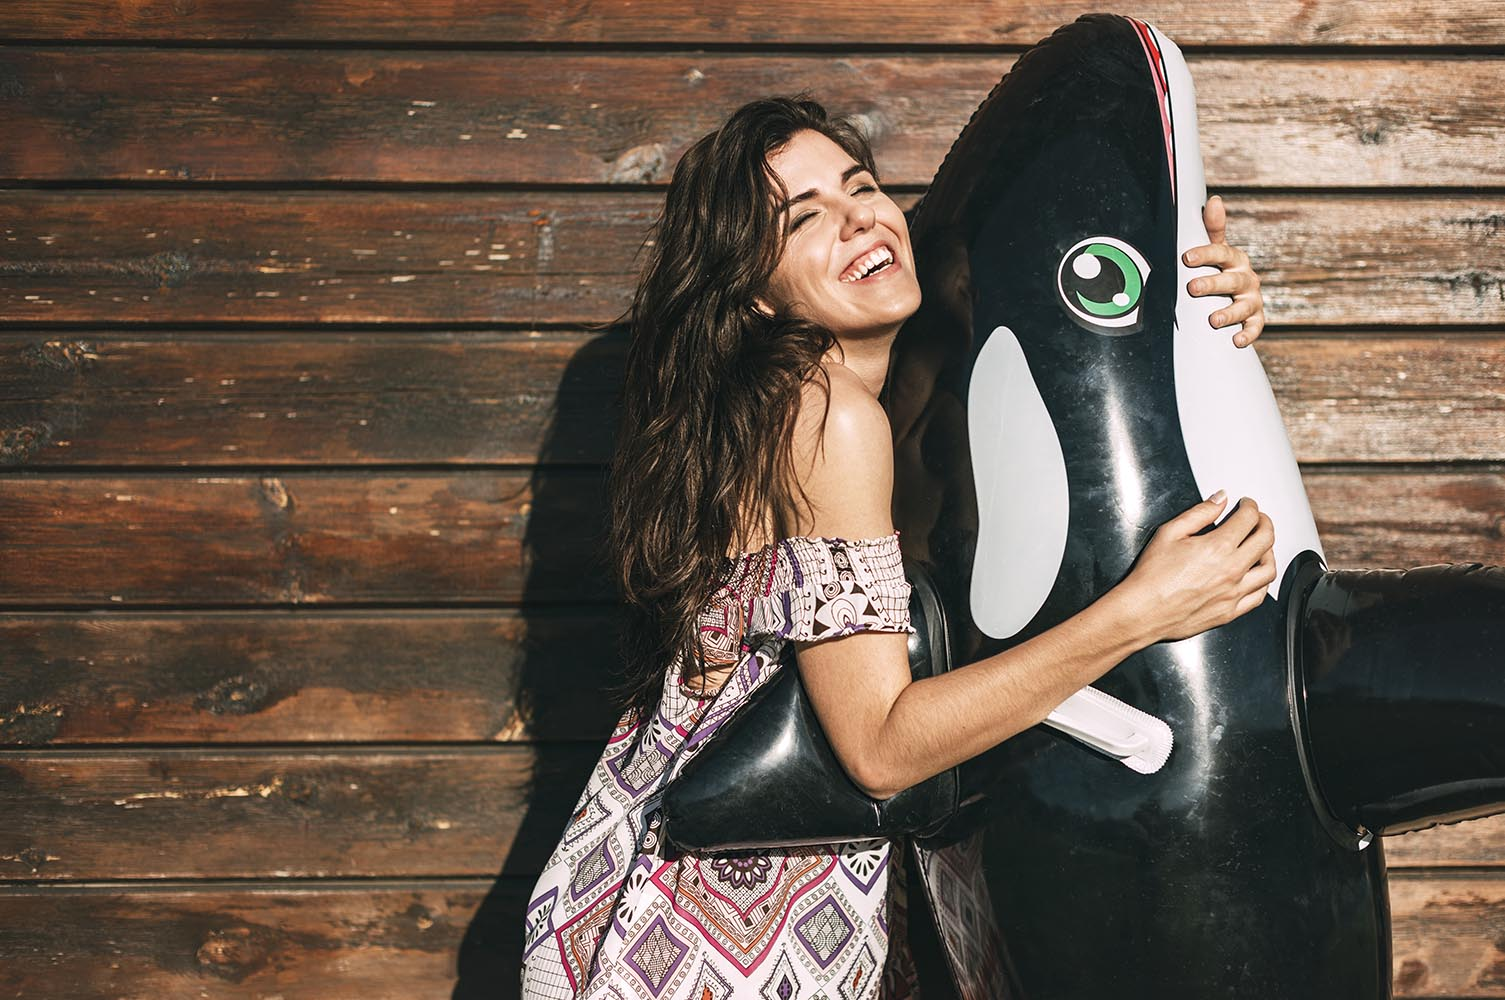 Beautiful young girl hugging an inflatable orca whale